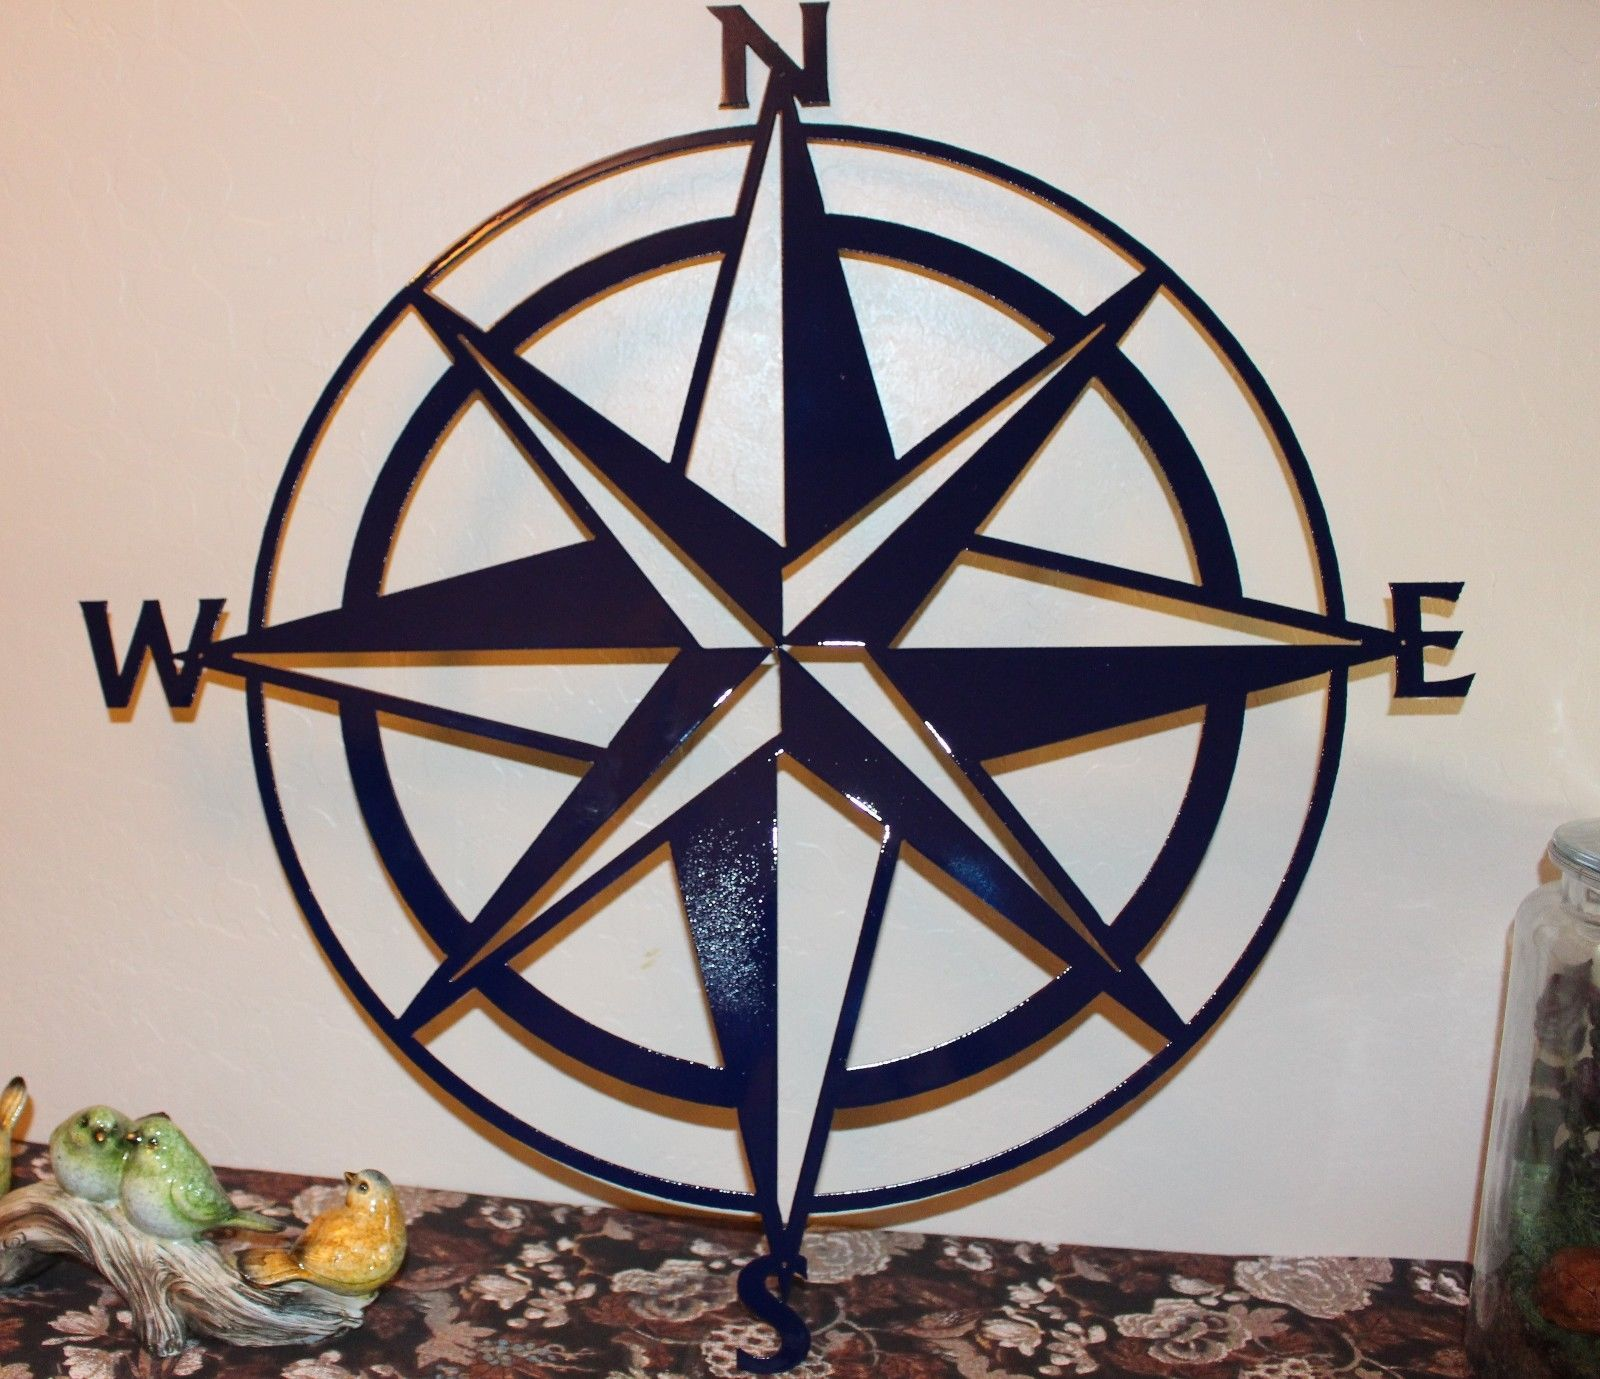 "Nautical COMPASS ROSE WALL ART DECOR 34"" Navy Blue - Wall ..."